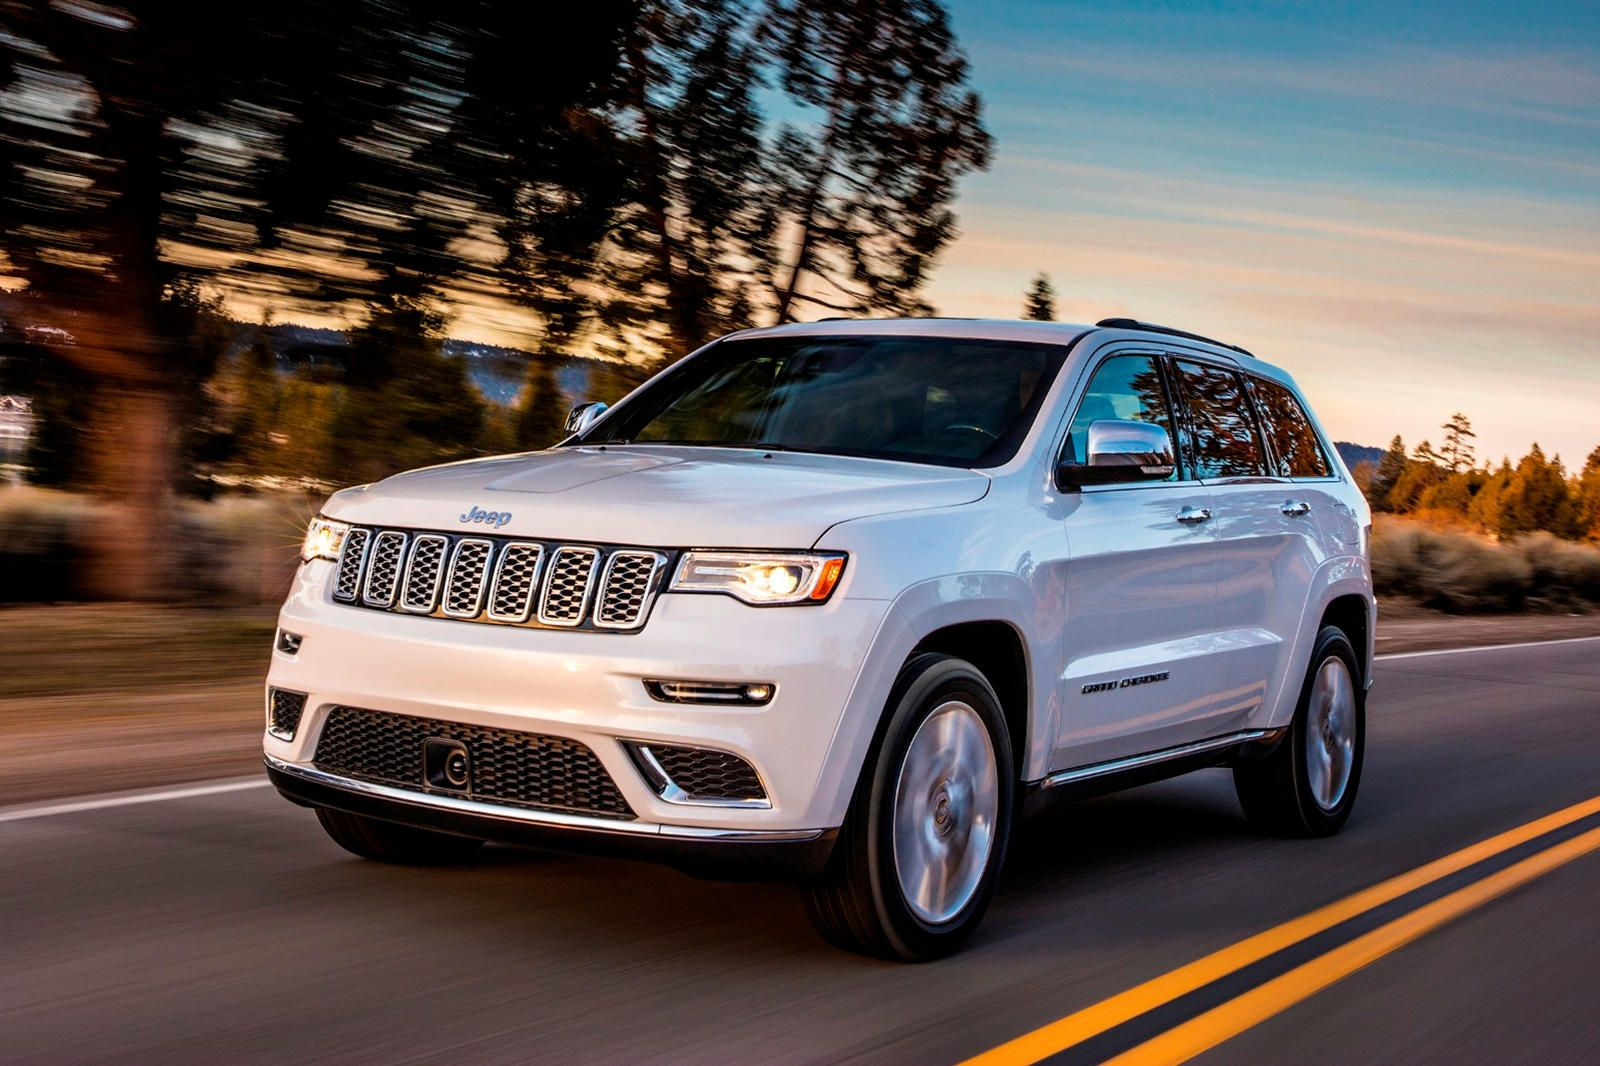 2019 Jeep Grand Cherokee Arrives With New Standard Safety Tech And Limited X Model 2017 Jeep Grand Cherokee Jeep Grand Cherokee Jeep Grand